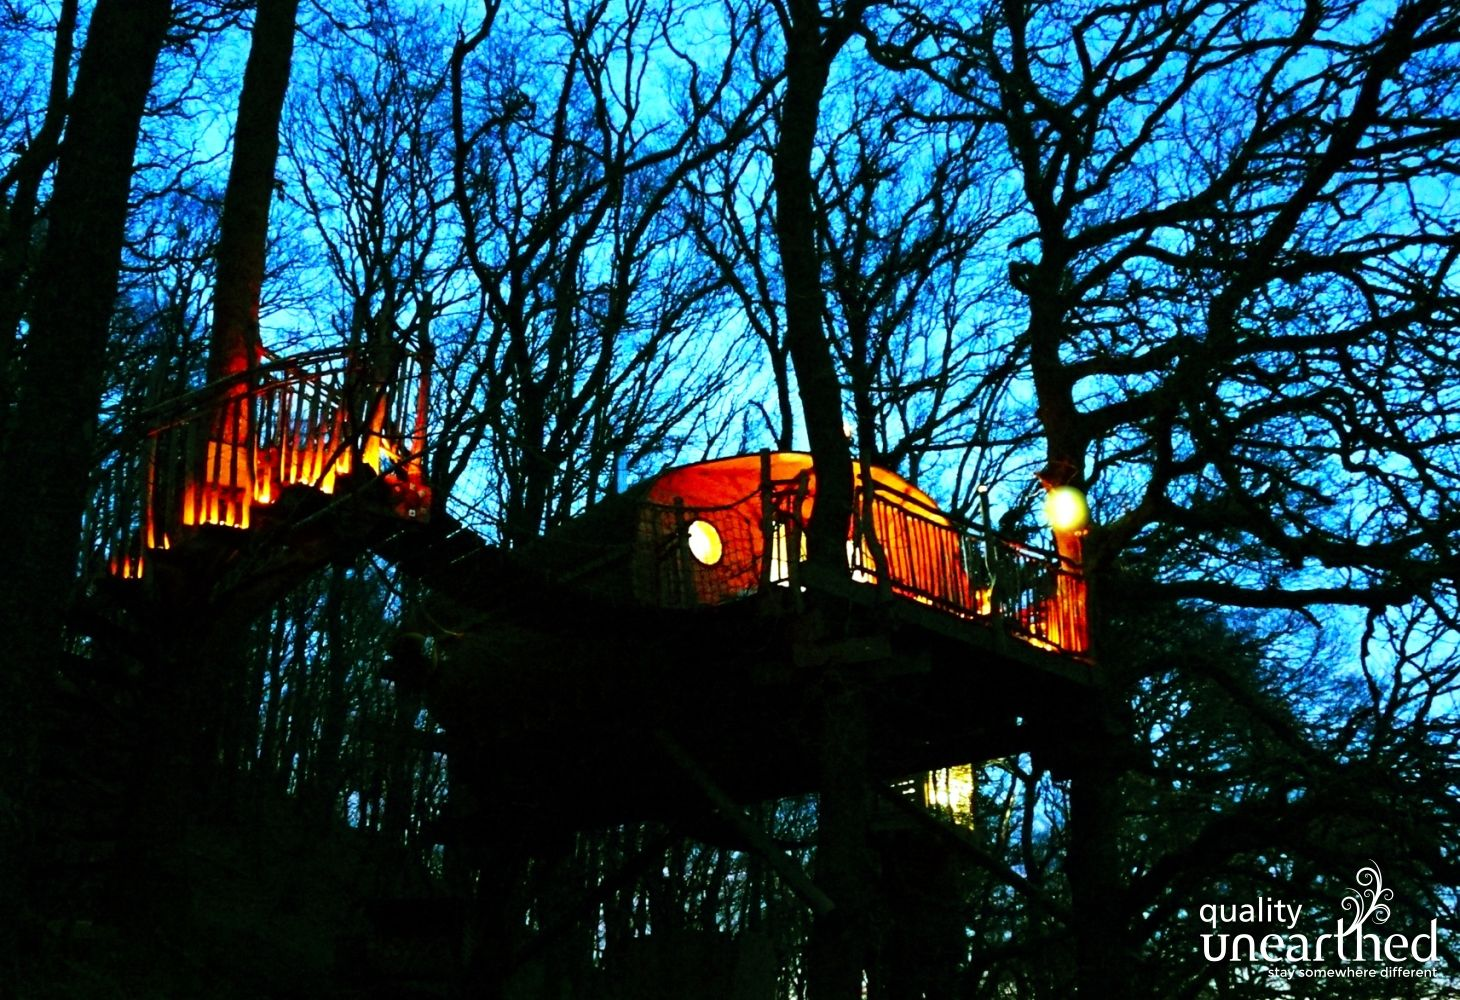 It is dusk and the lights from the treehouse set high on stilts on the side of the hill pave the way for dark sky nights